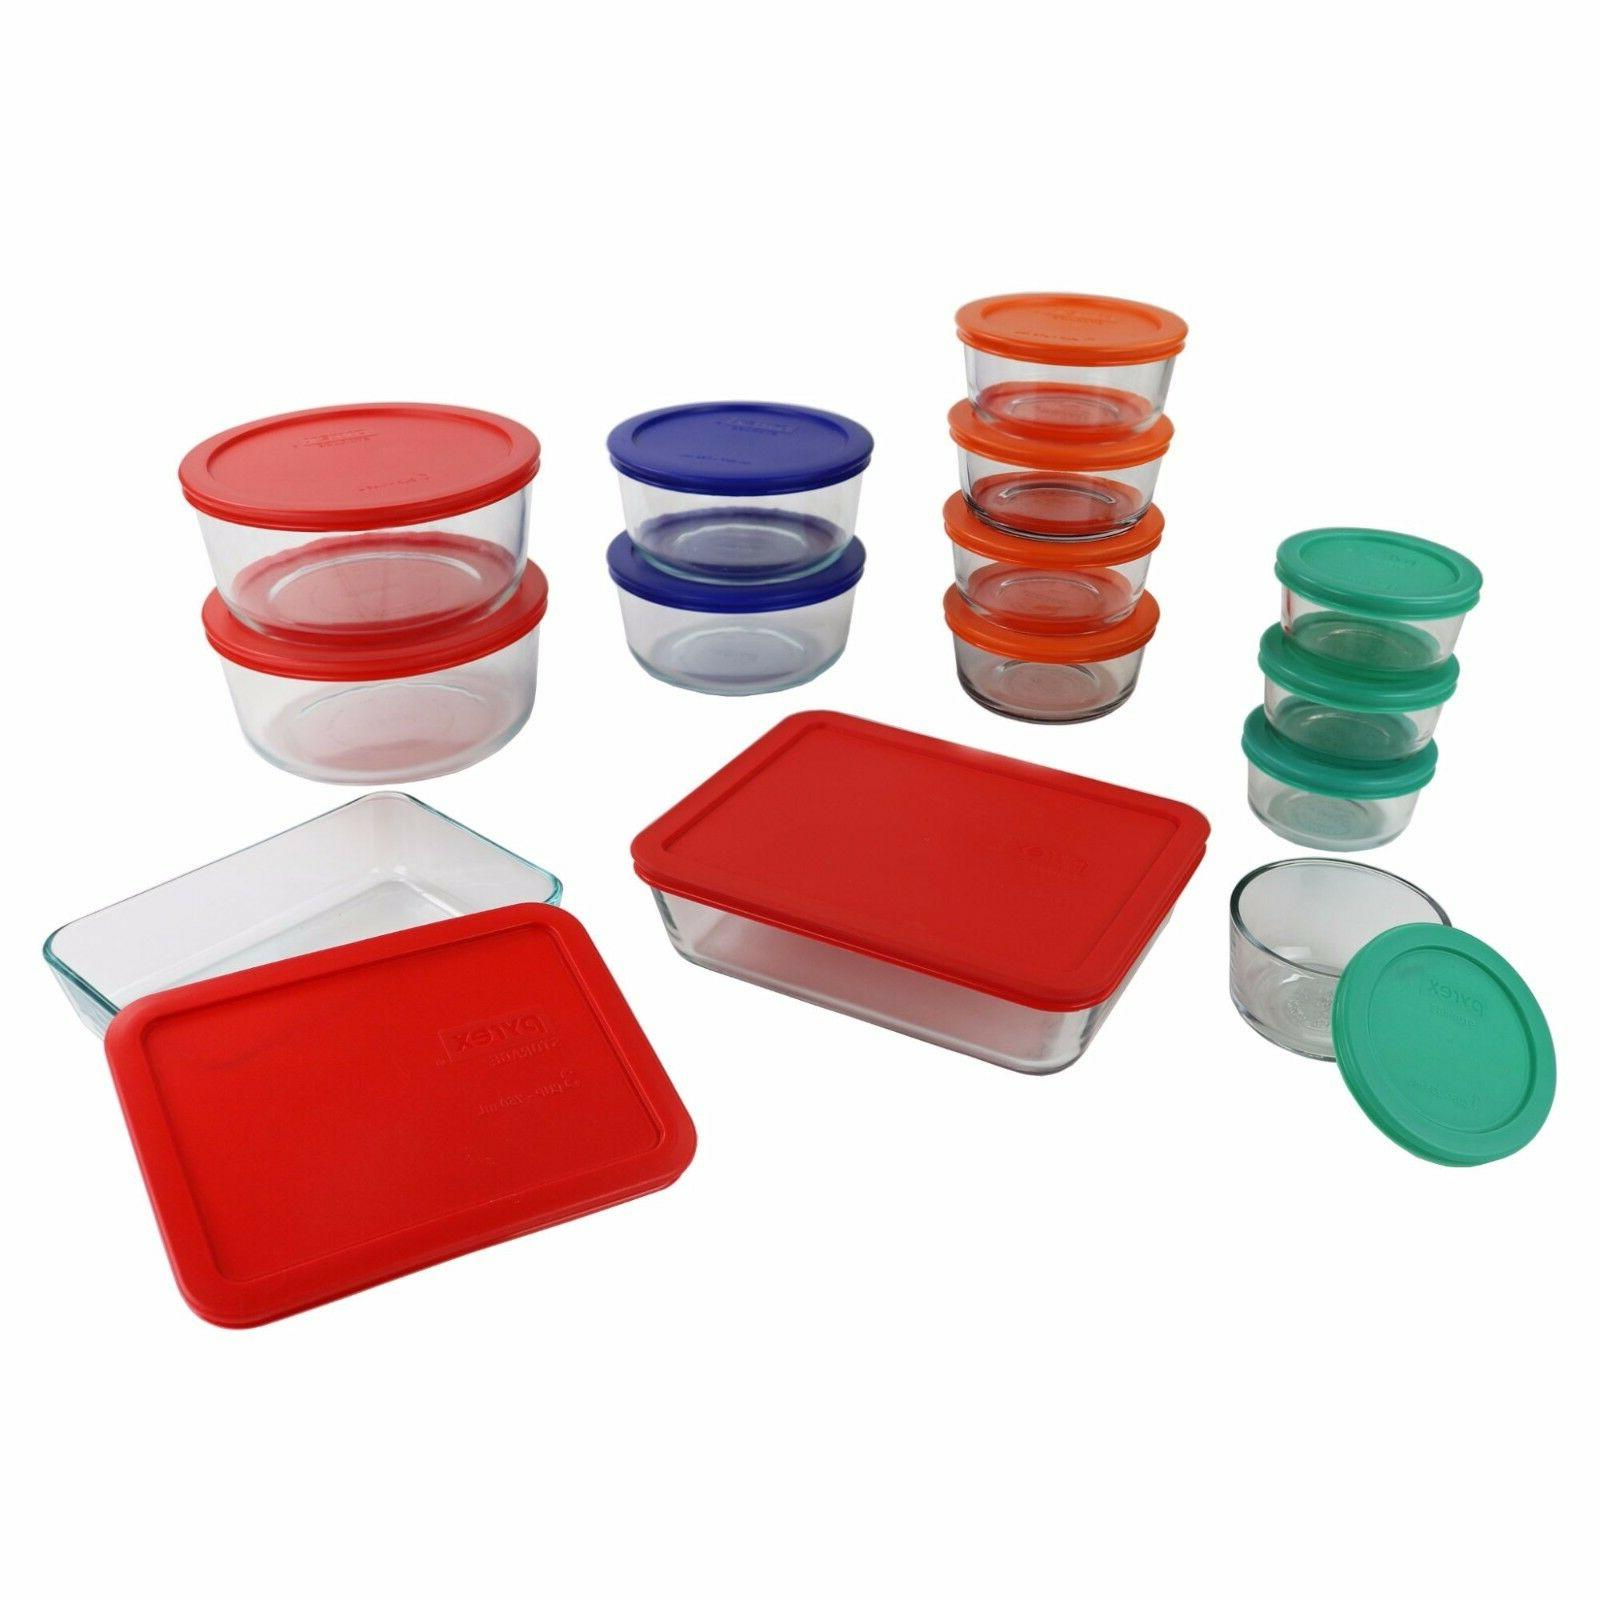 Pyrex Food Storage Rectangle Round CONTAINER Red Green Orang